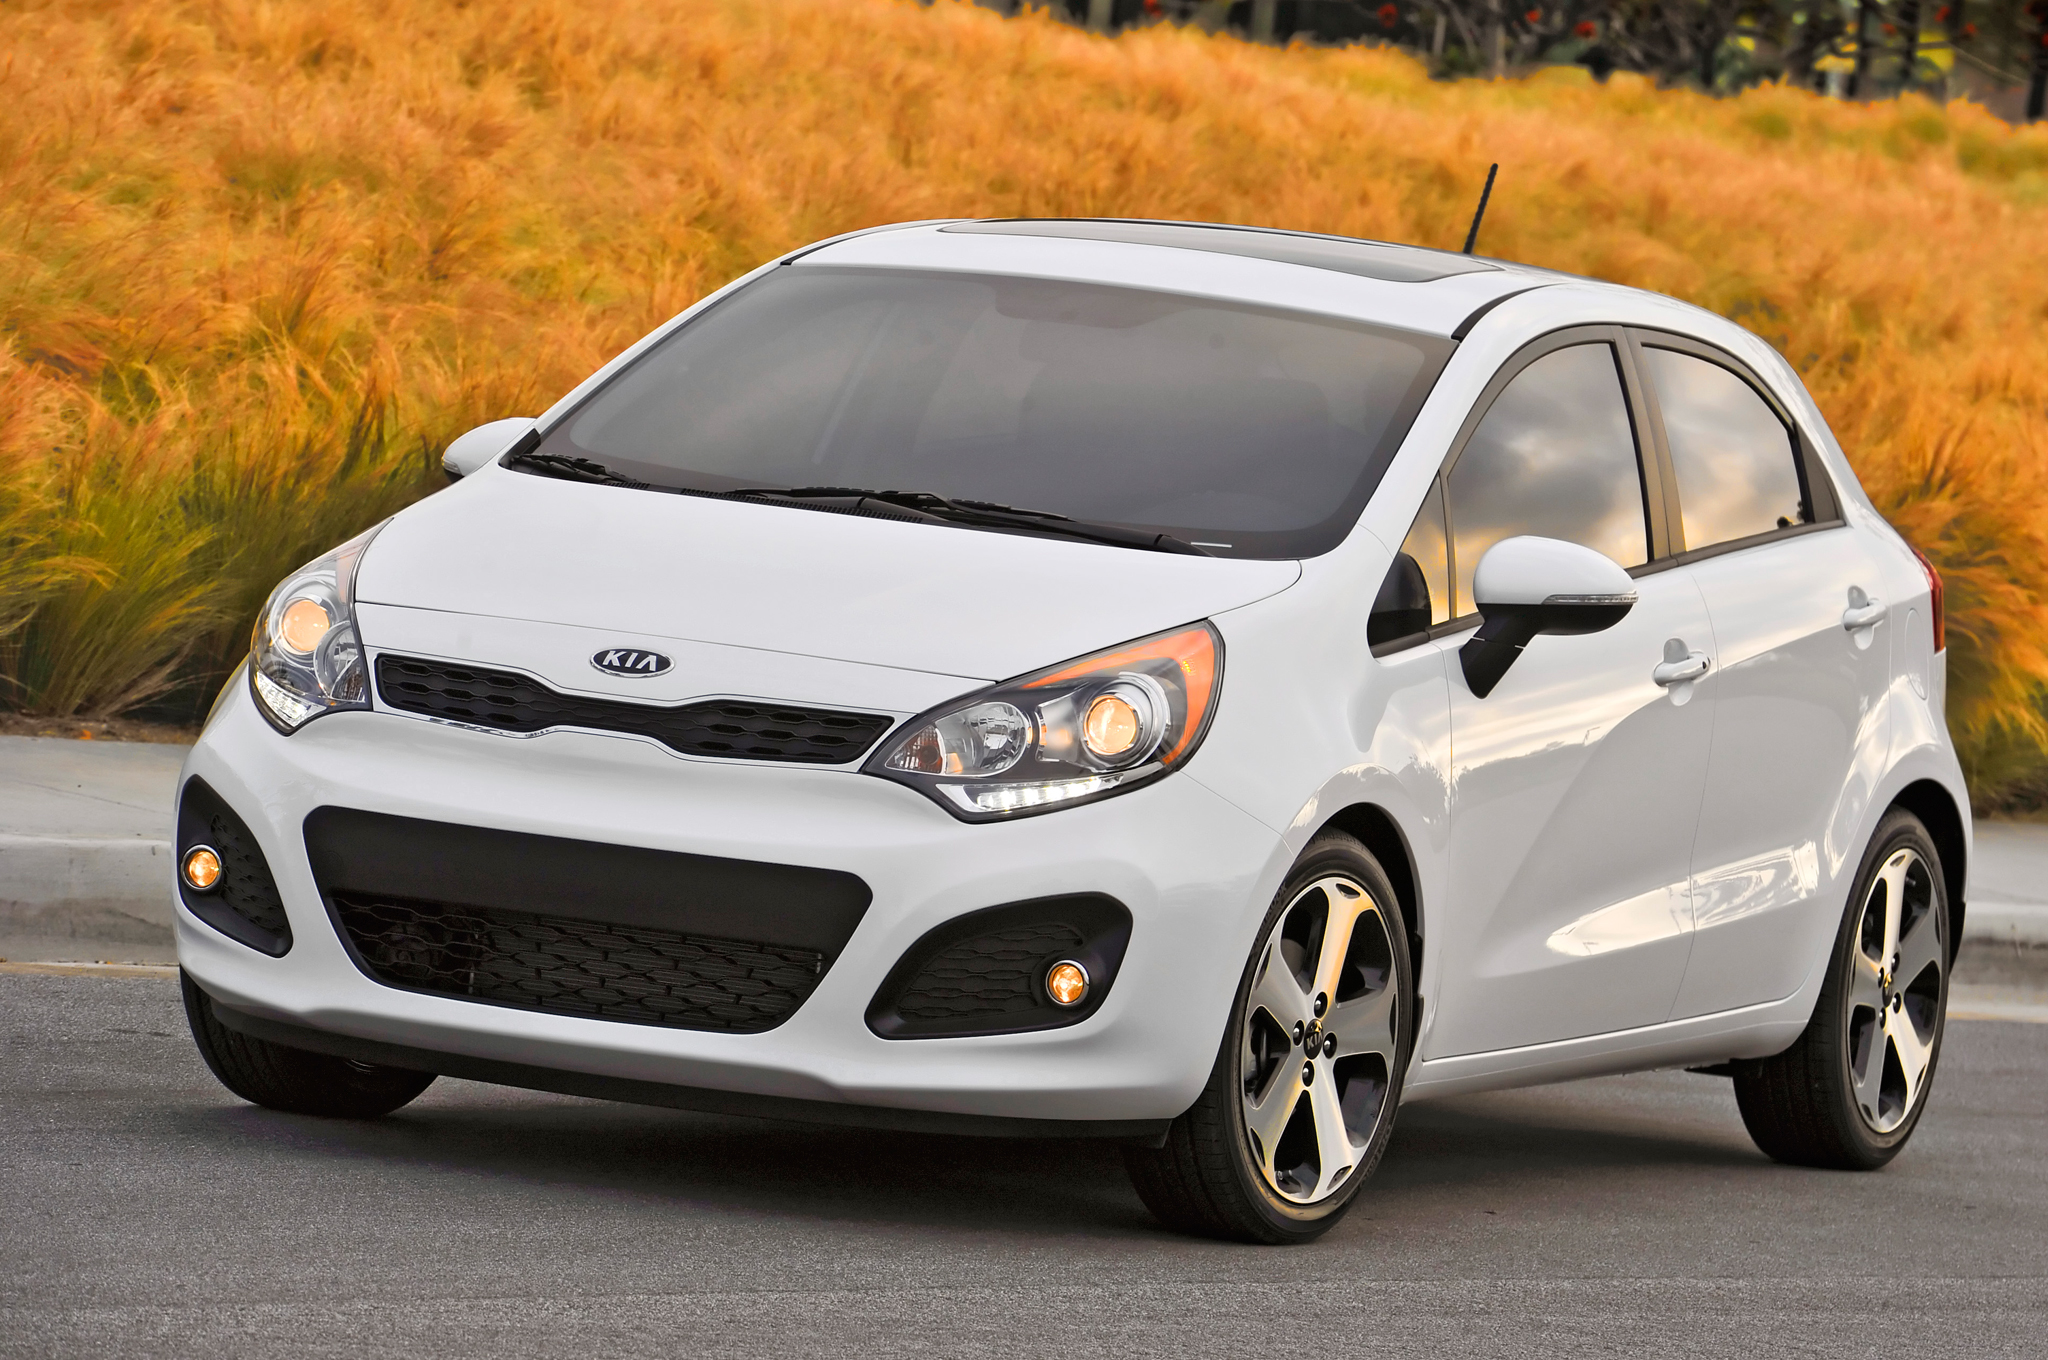 2014 kia rio information and photos zombiedrive. Black Bedroom Furniture Sets. Home Design Ideas